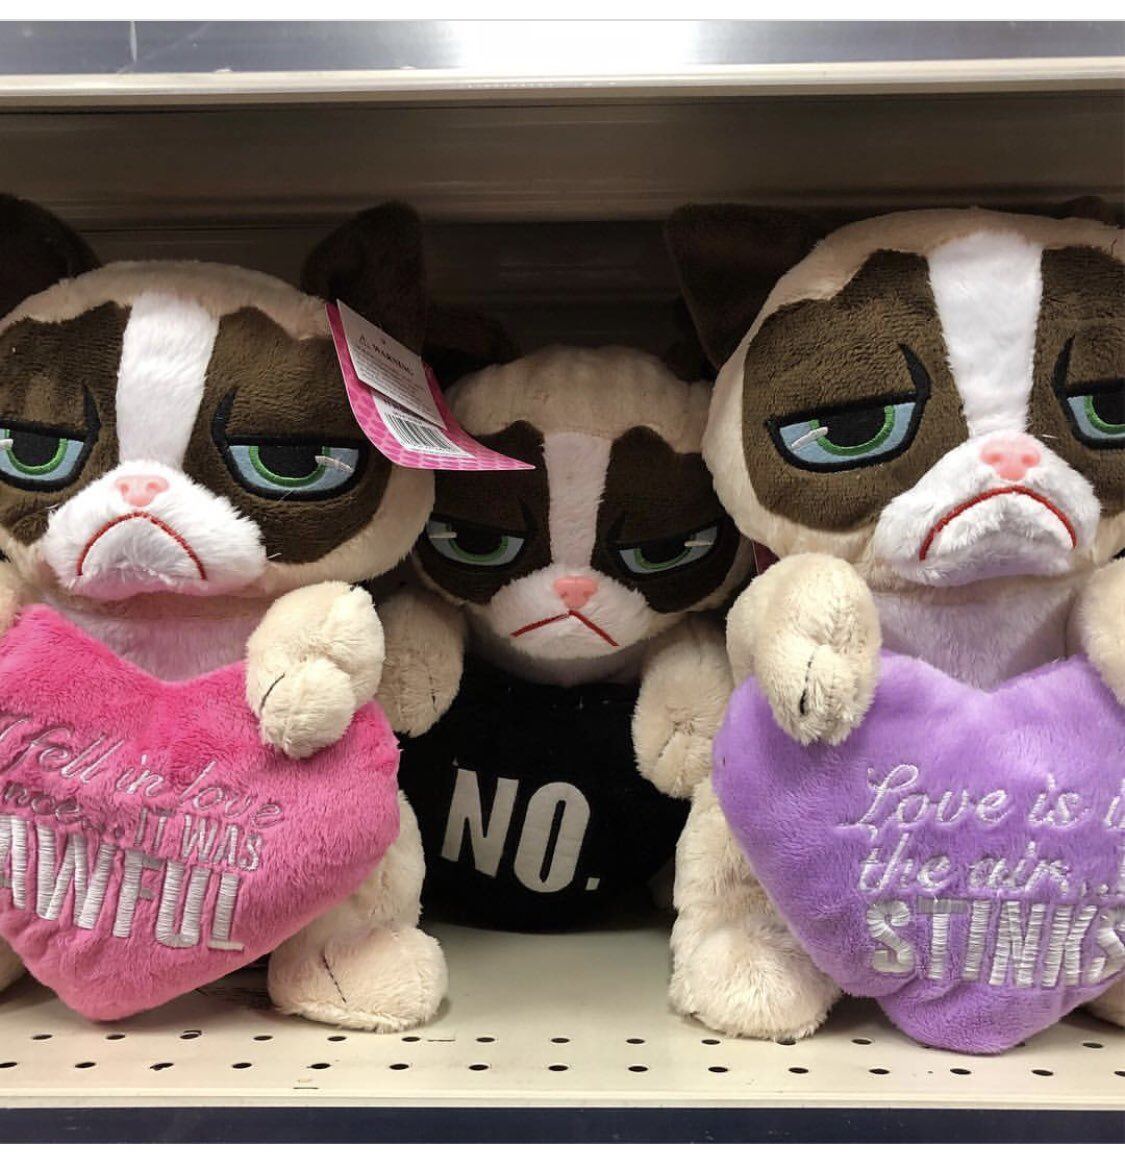 Show Them You REALLY Care with a Last Minute #ValentinesDay Grumpy Cat Plush. Available EXCLUSIVELY at @cvspharmacy